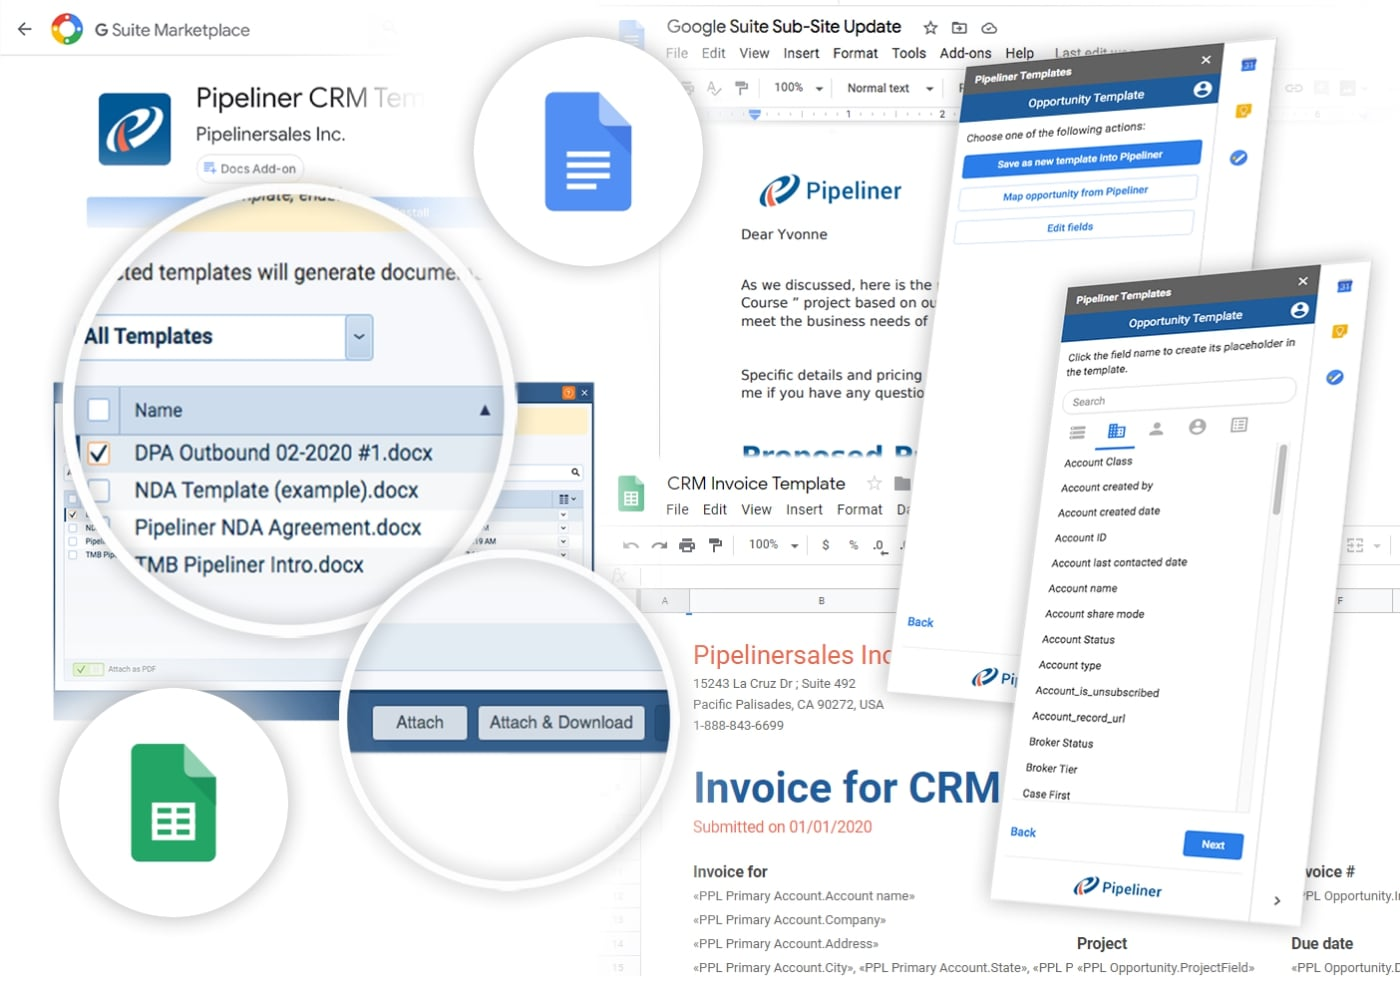 Google Docs and Google Sheets integration with Pipeliner CRM